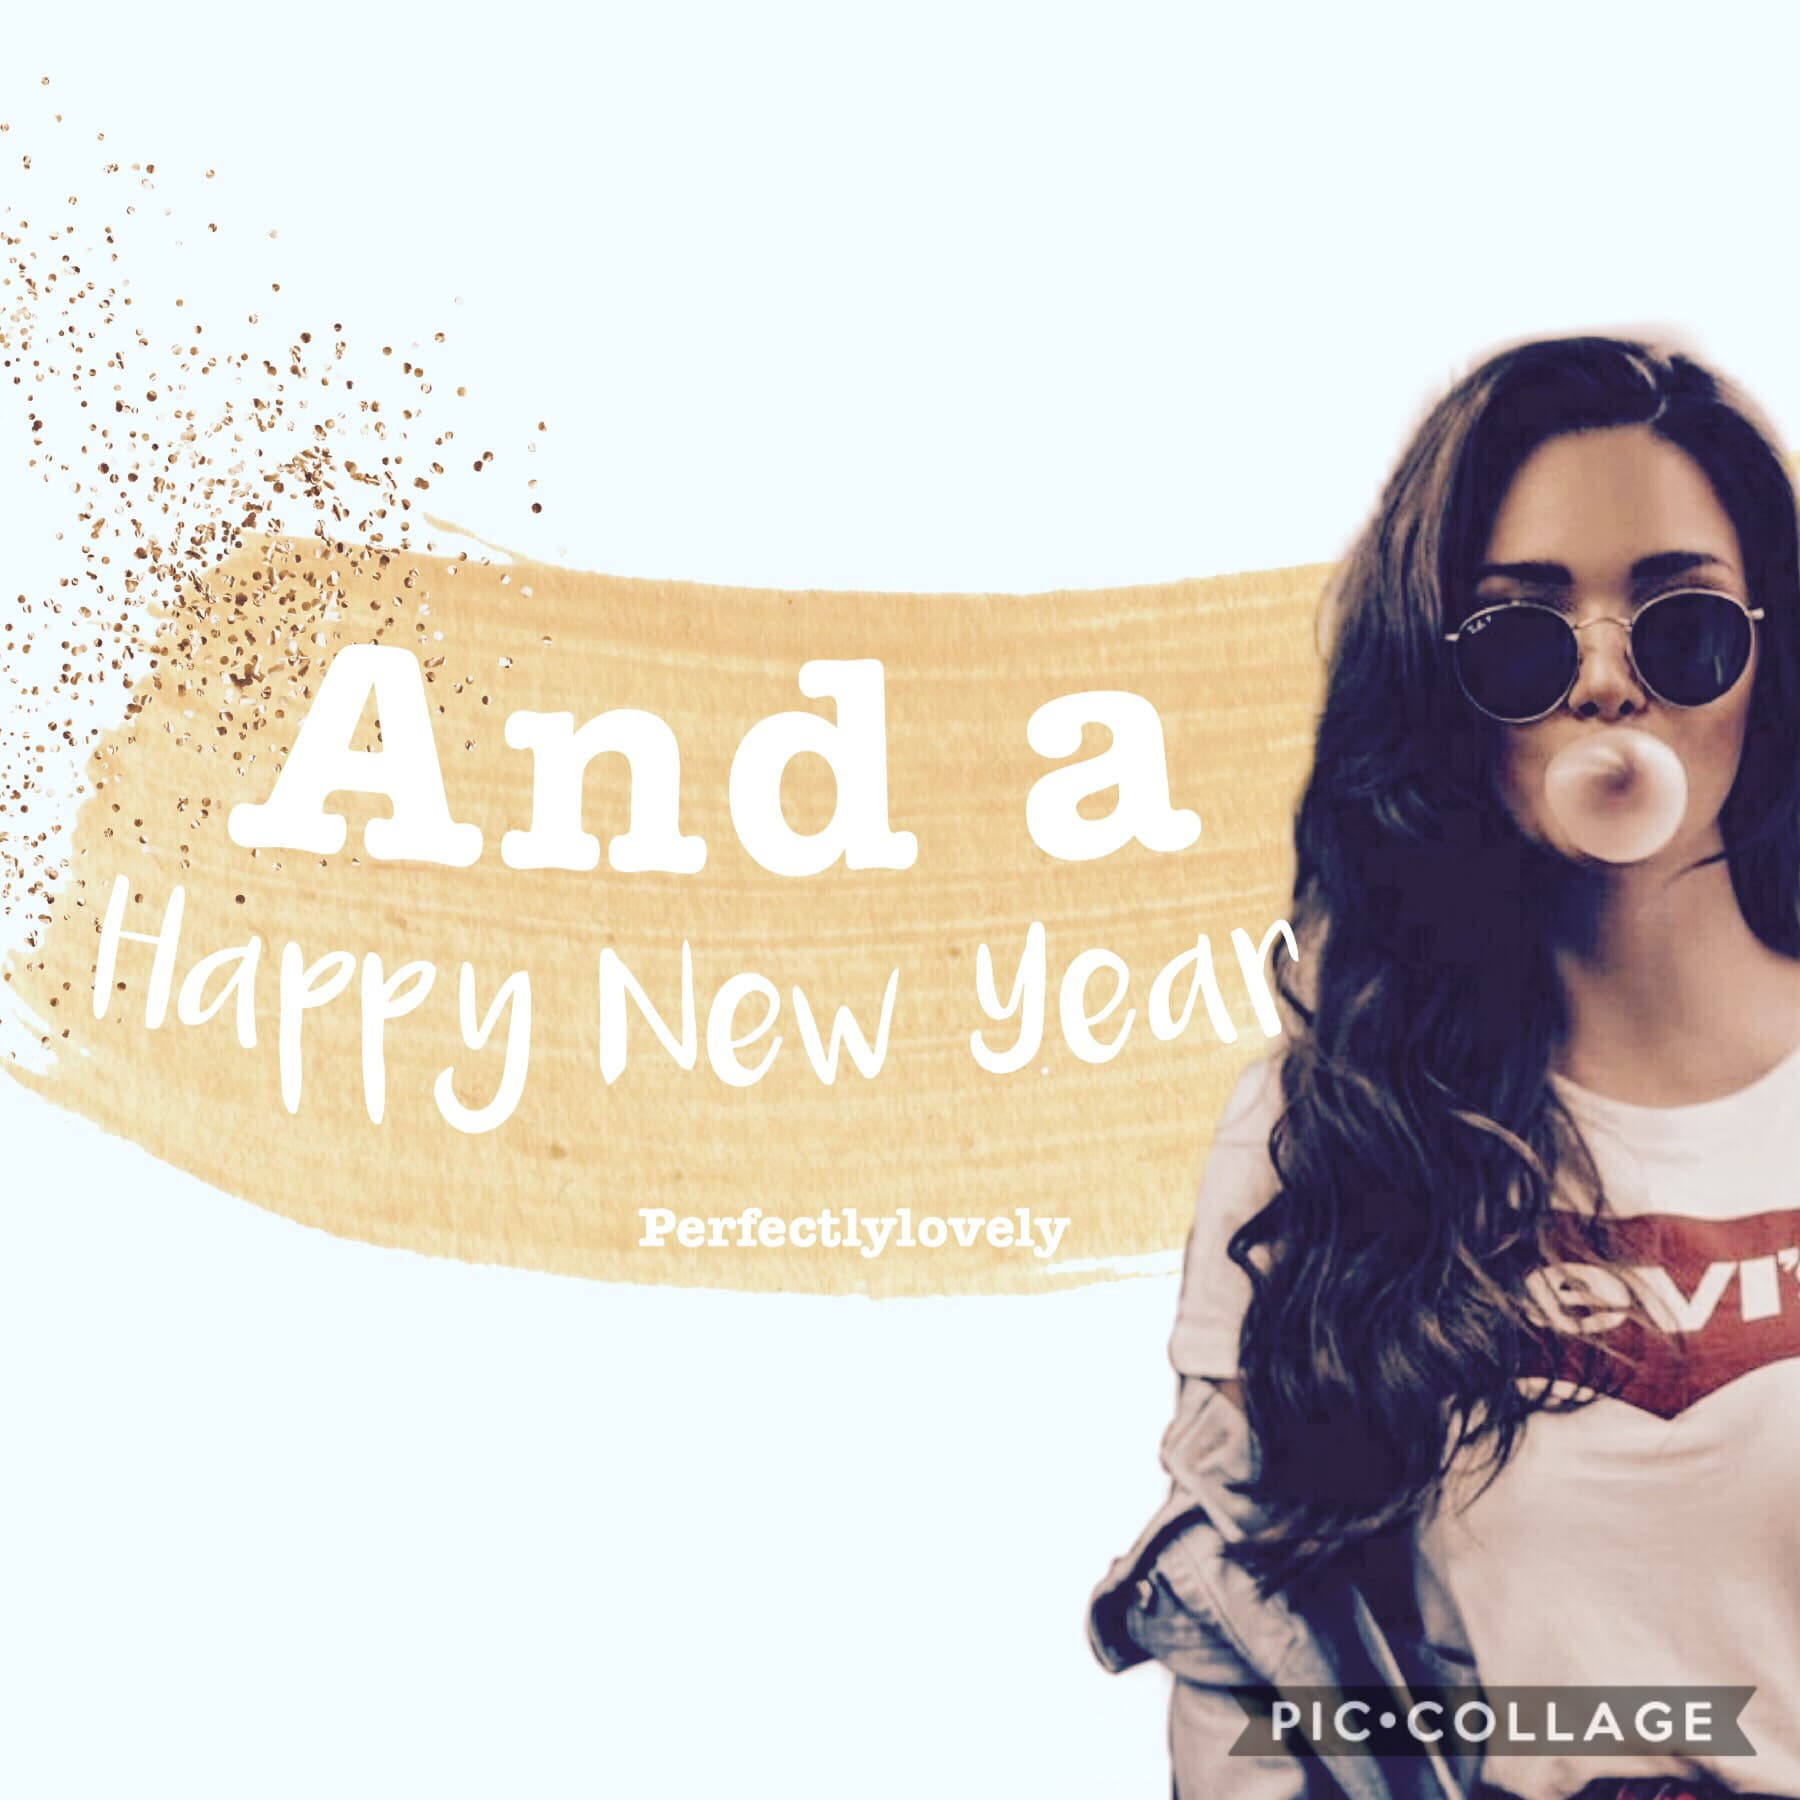 Happy new year! Tap Heyo my friends! How are you guys? I'm so excited for 2019 and everything it will bring.  Qotd: favorite 2018 memory Aotd: turning 18 and getting a car!